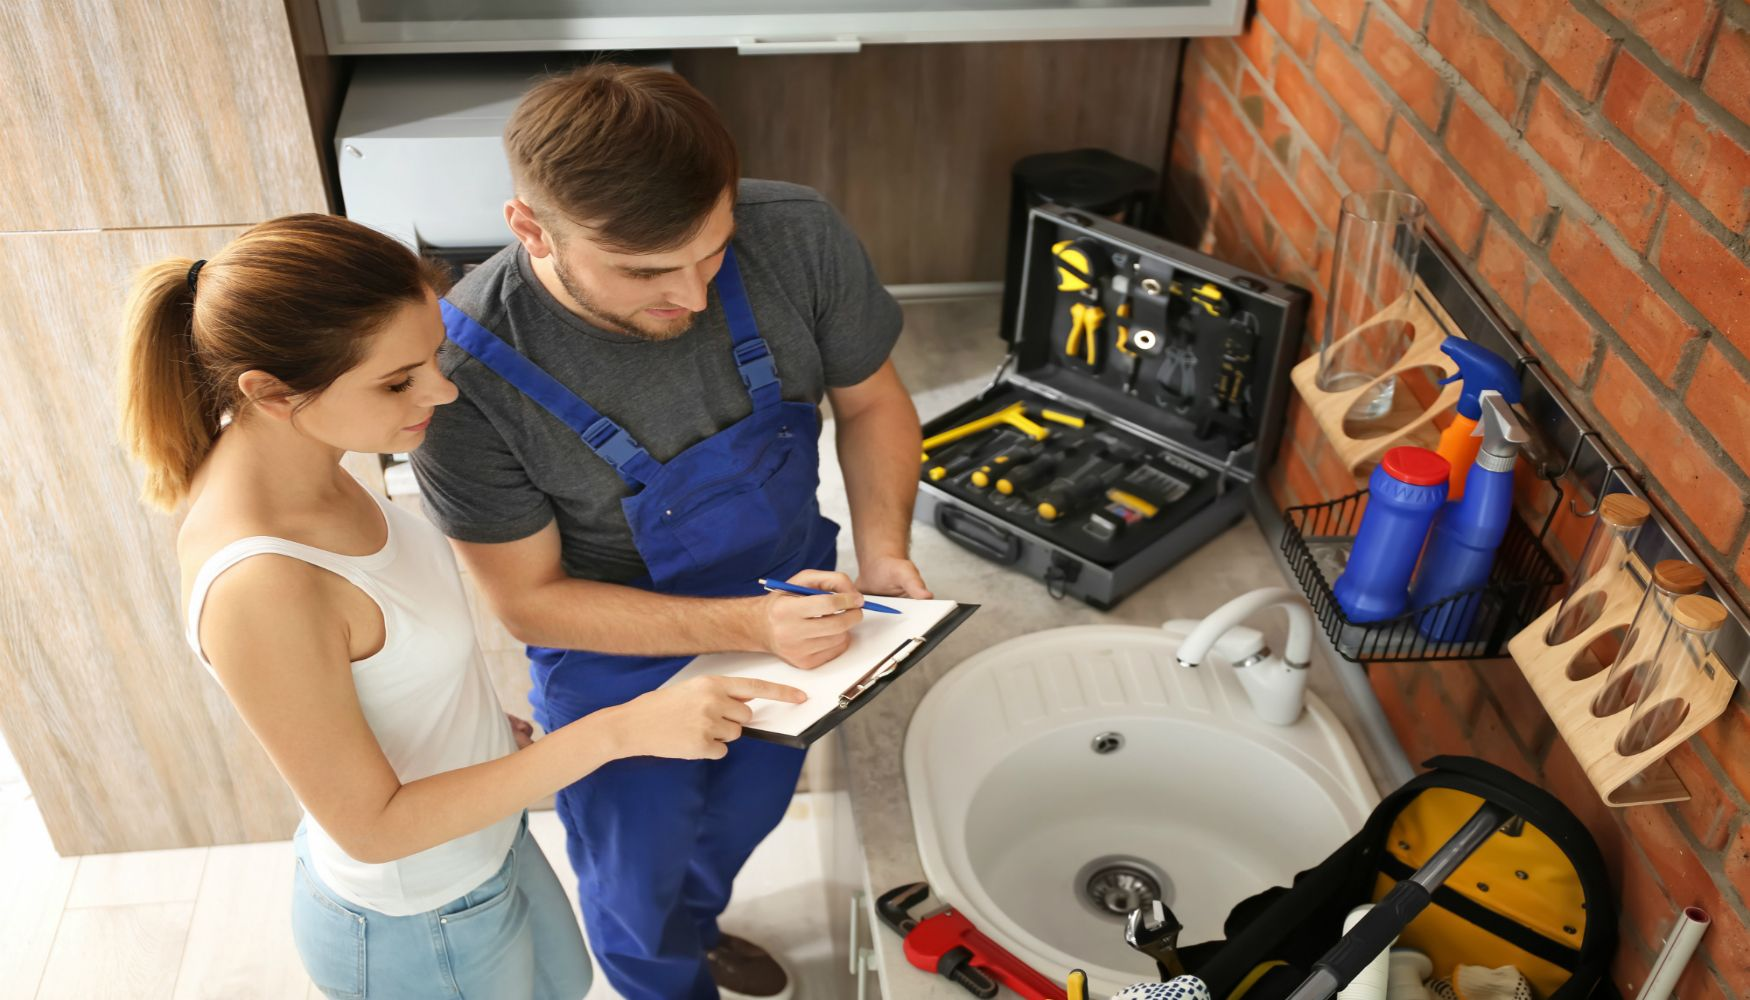 How to Find a Reliable Plumber in Mountain View, CA